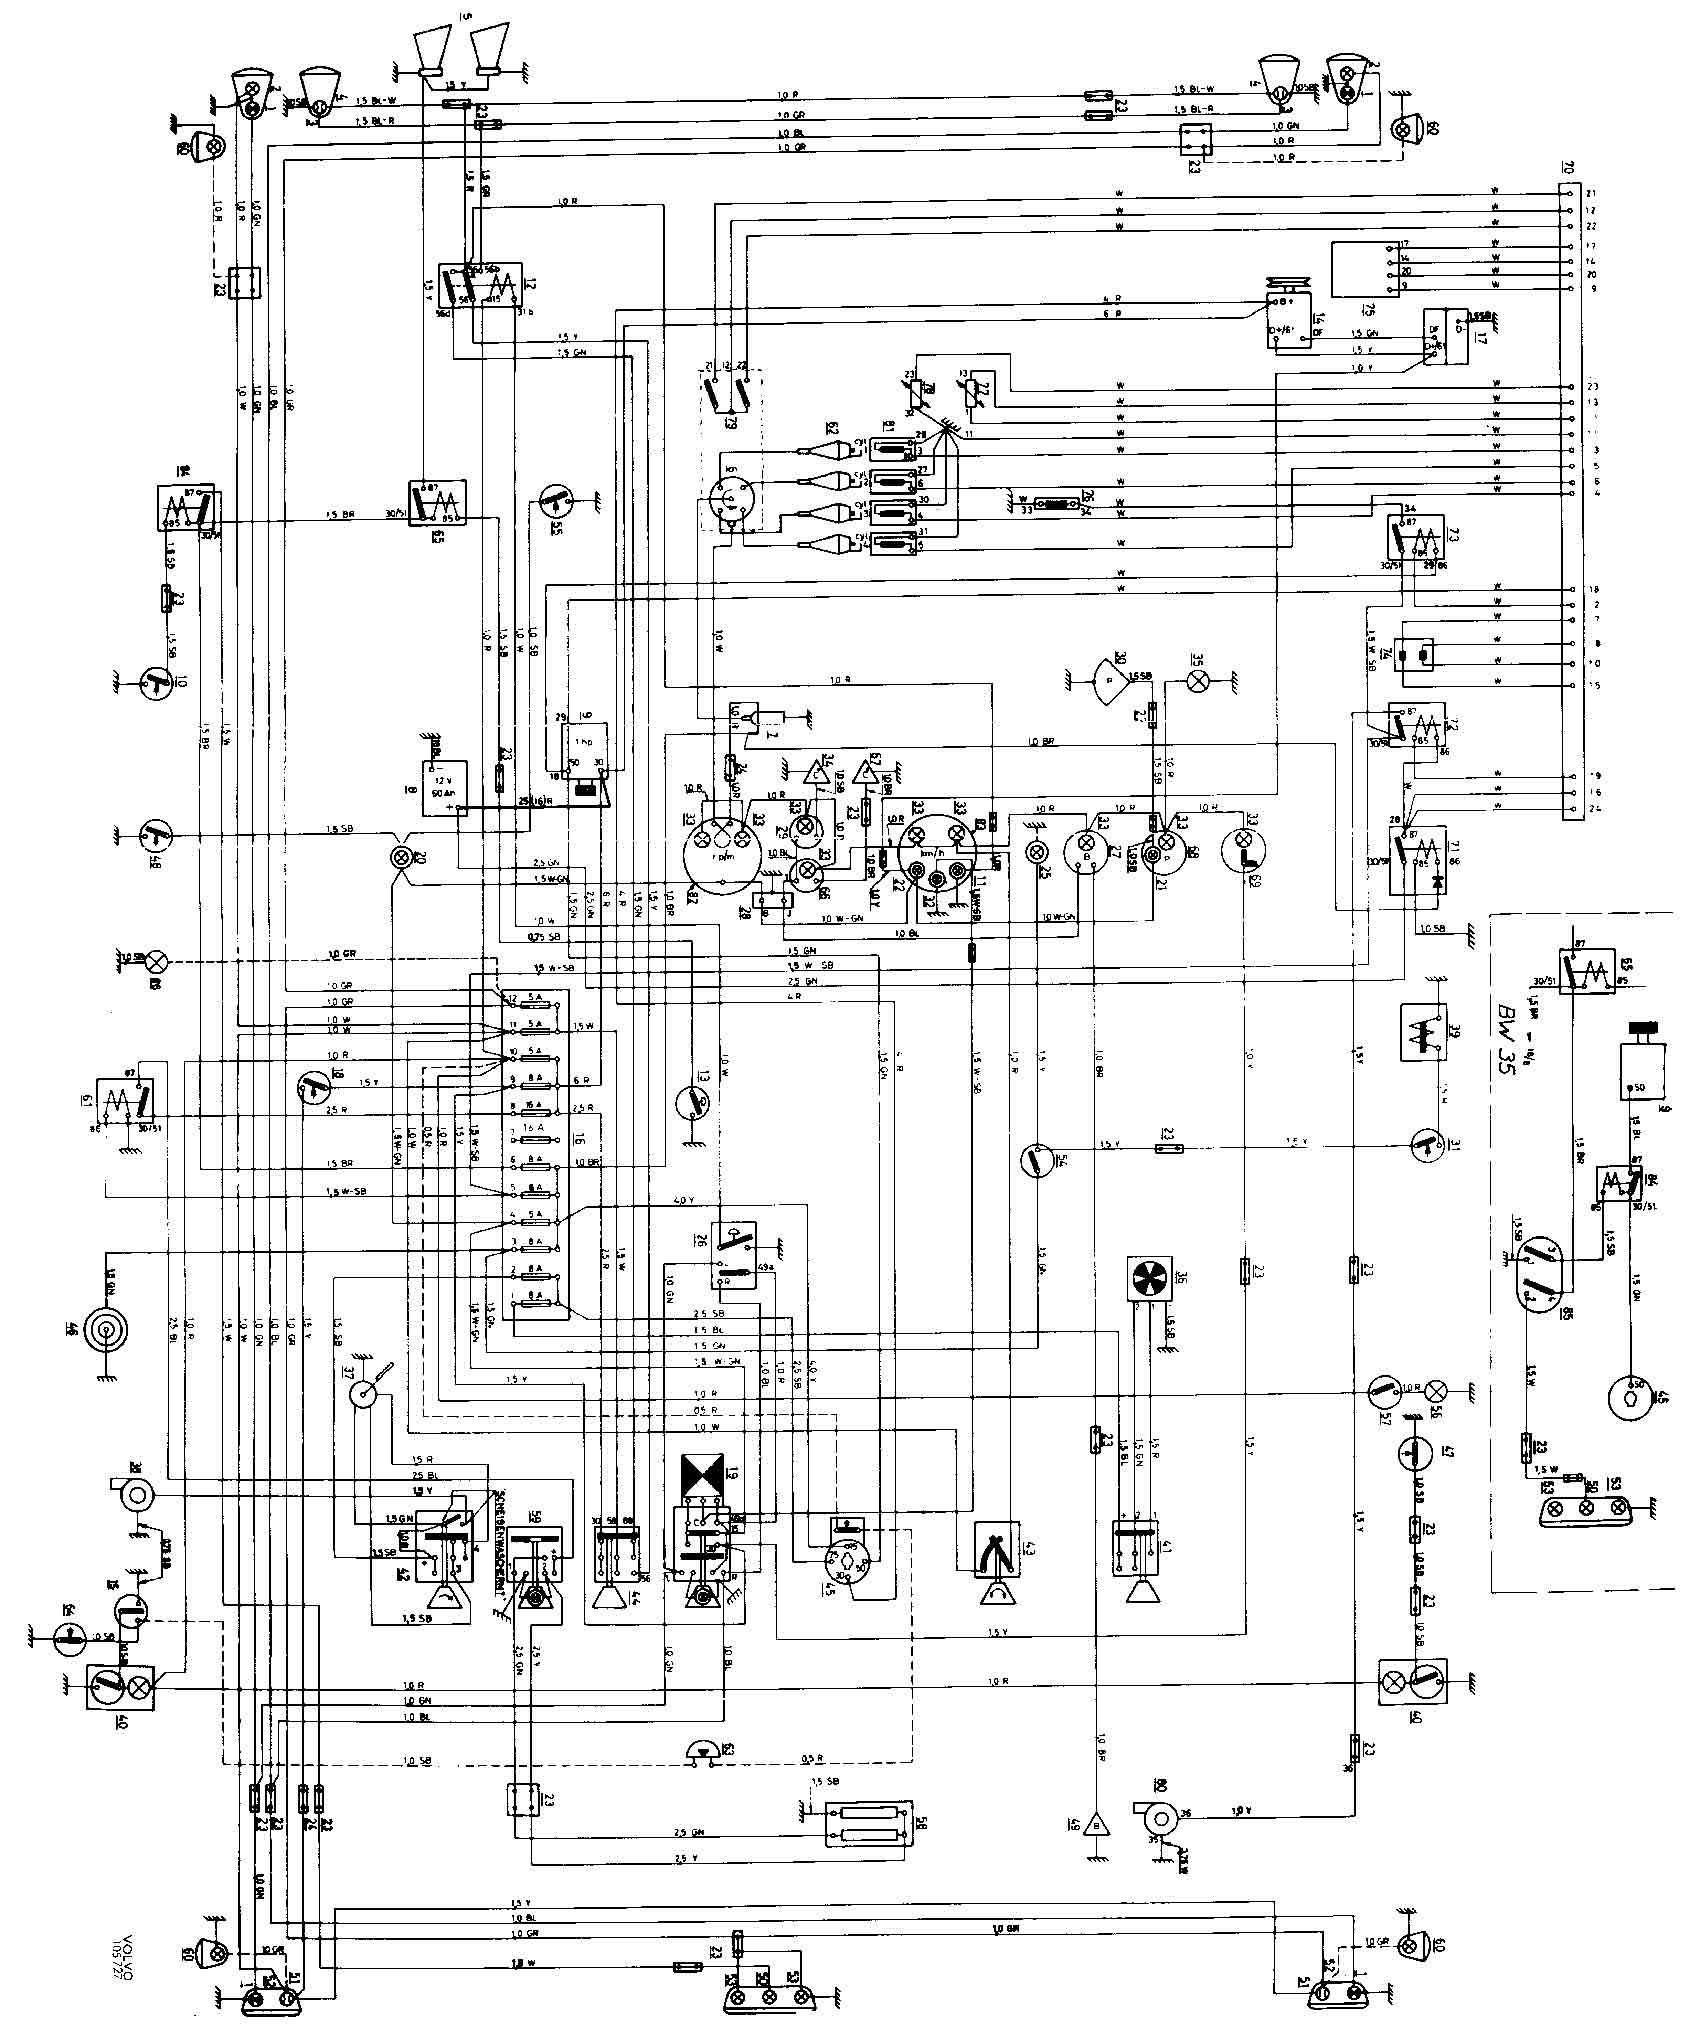 1800e wiring diagram